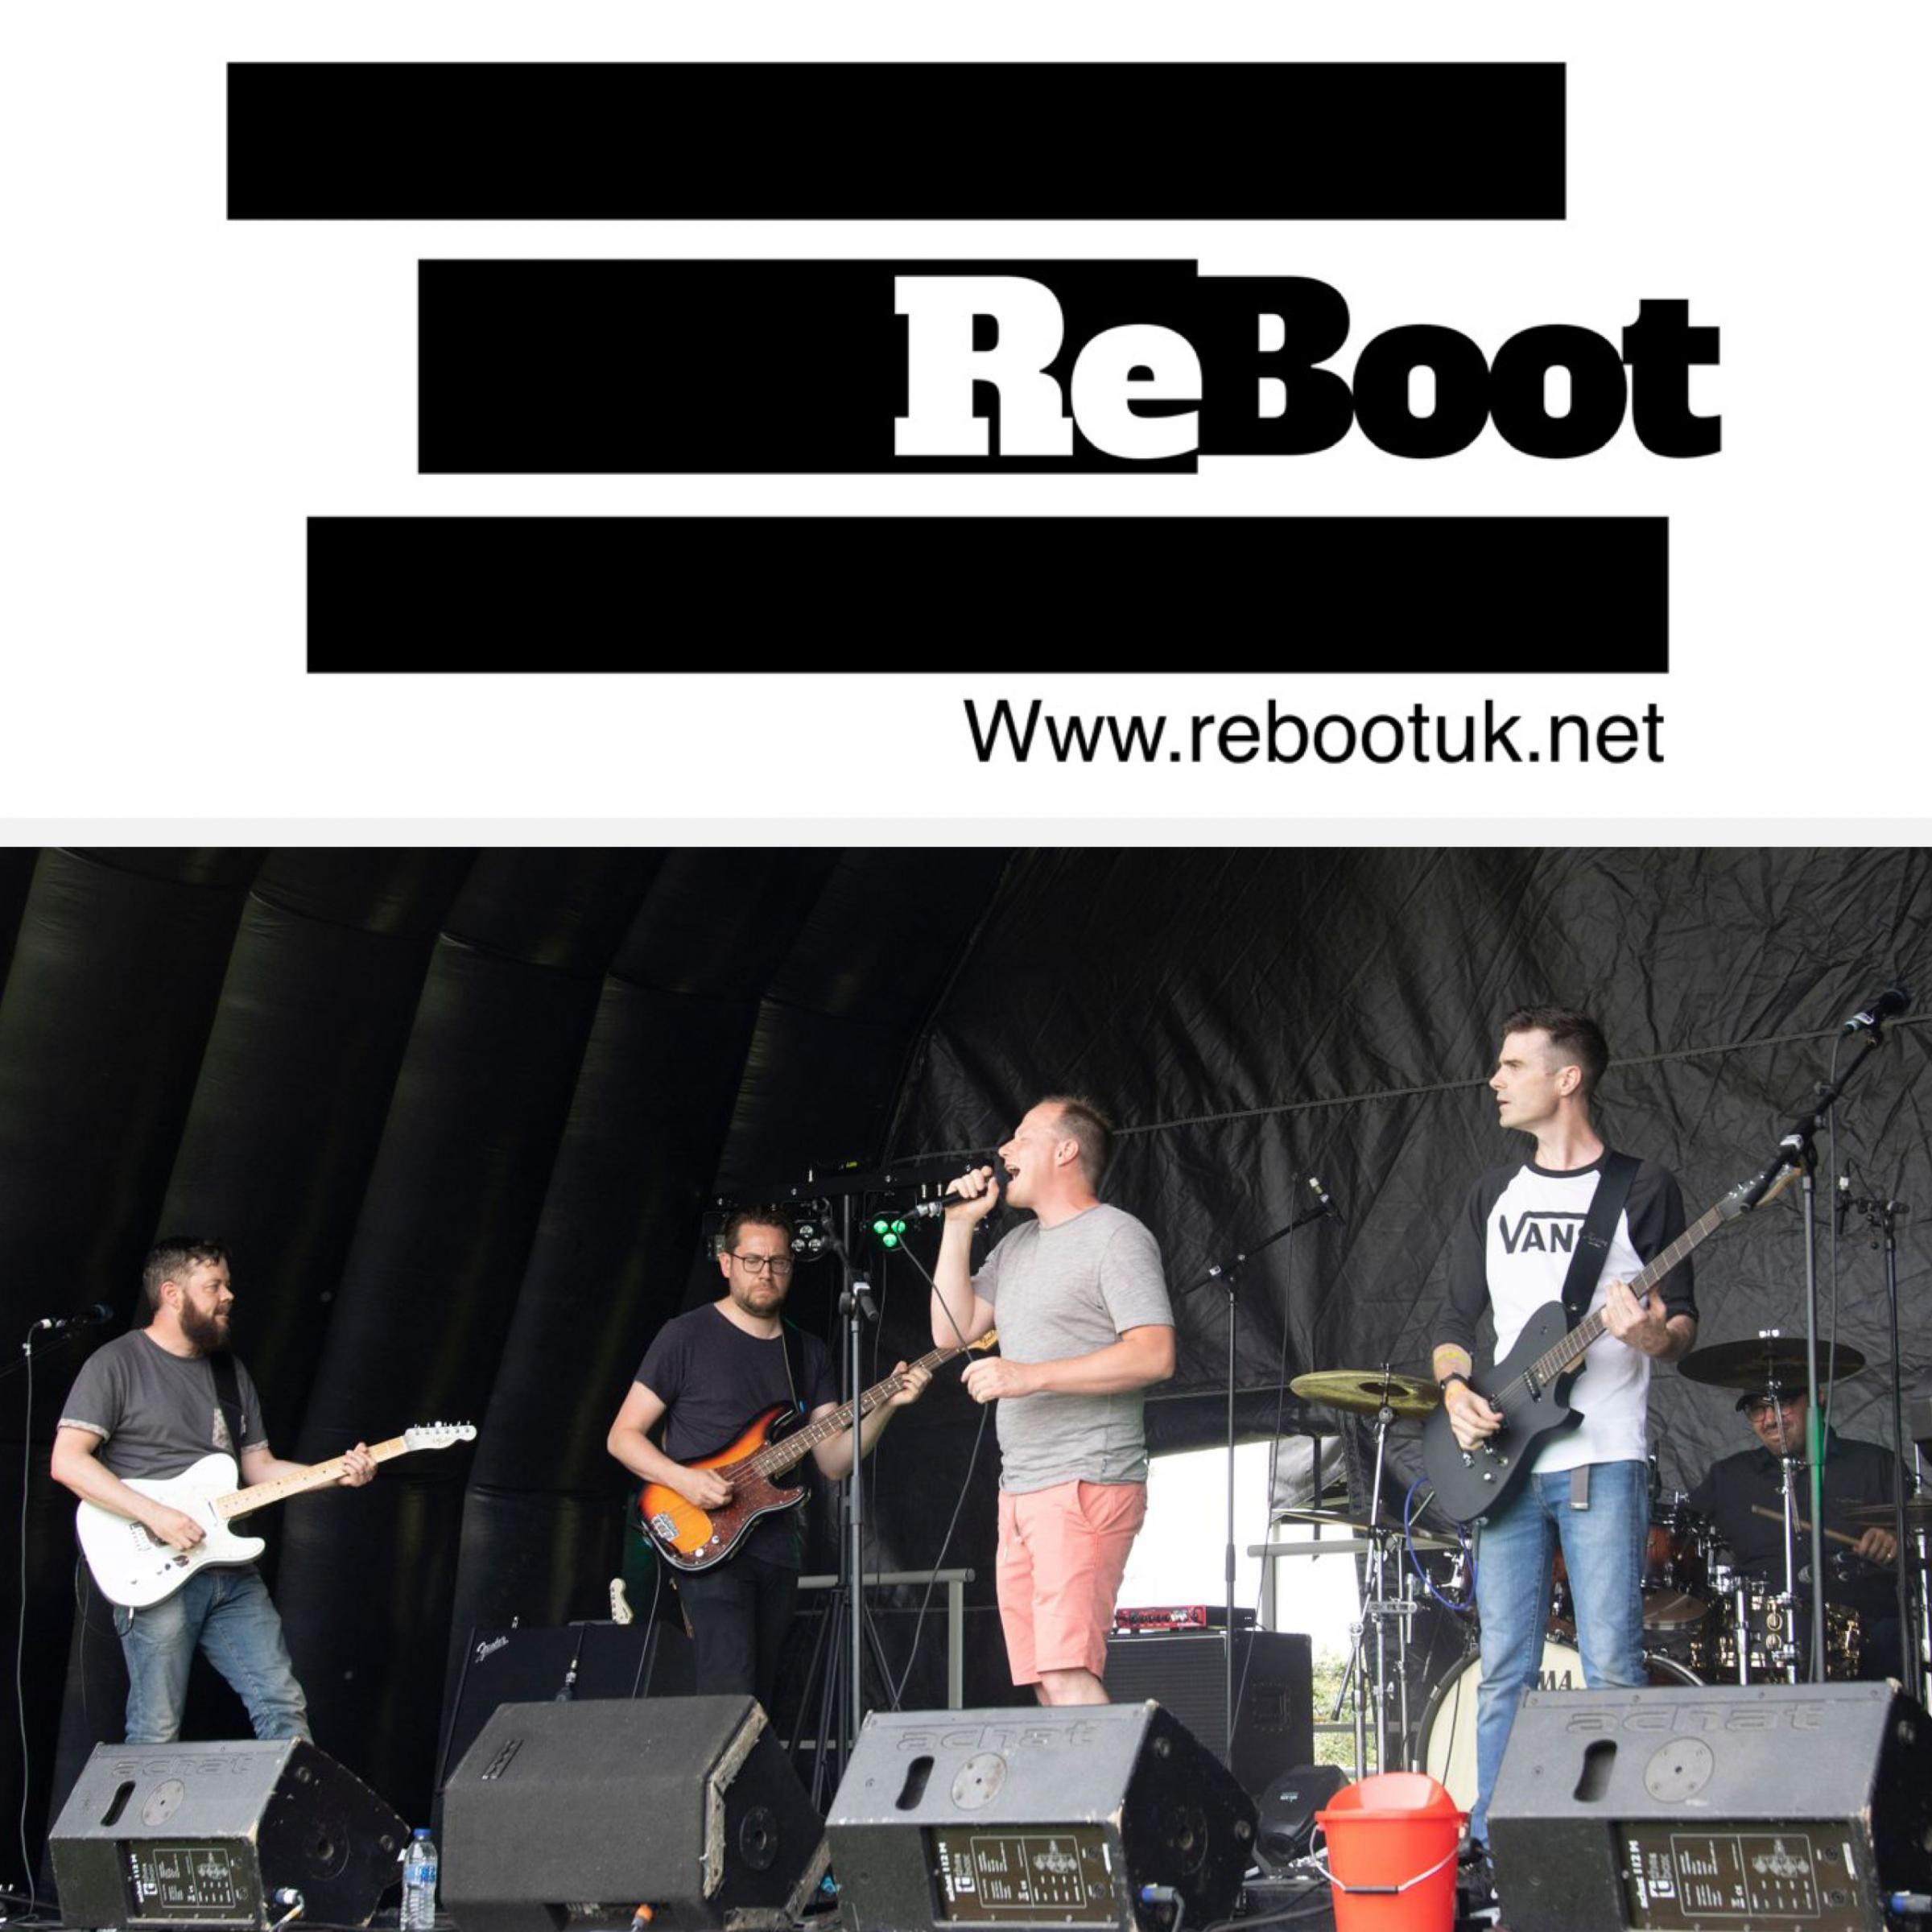 ReBoot Live at The Essex Wild Festival